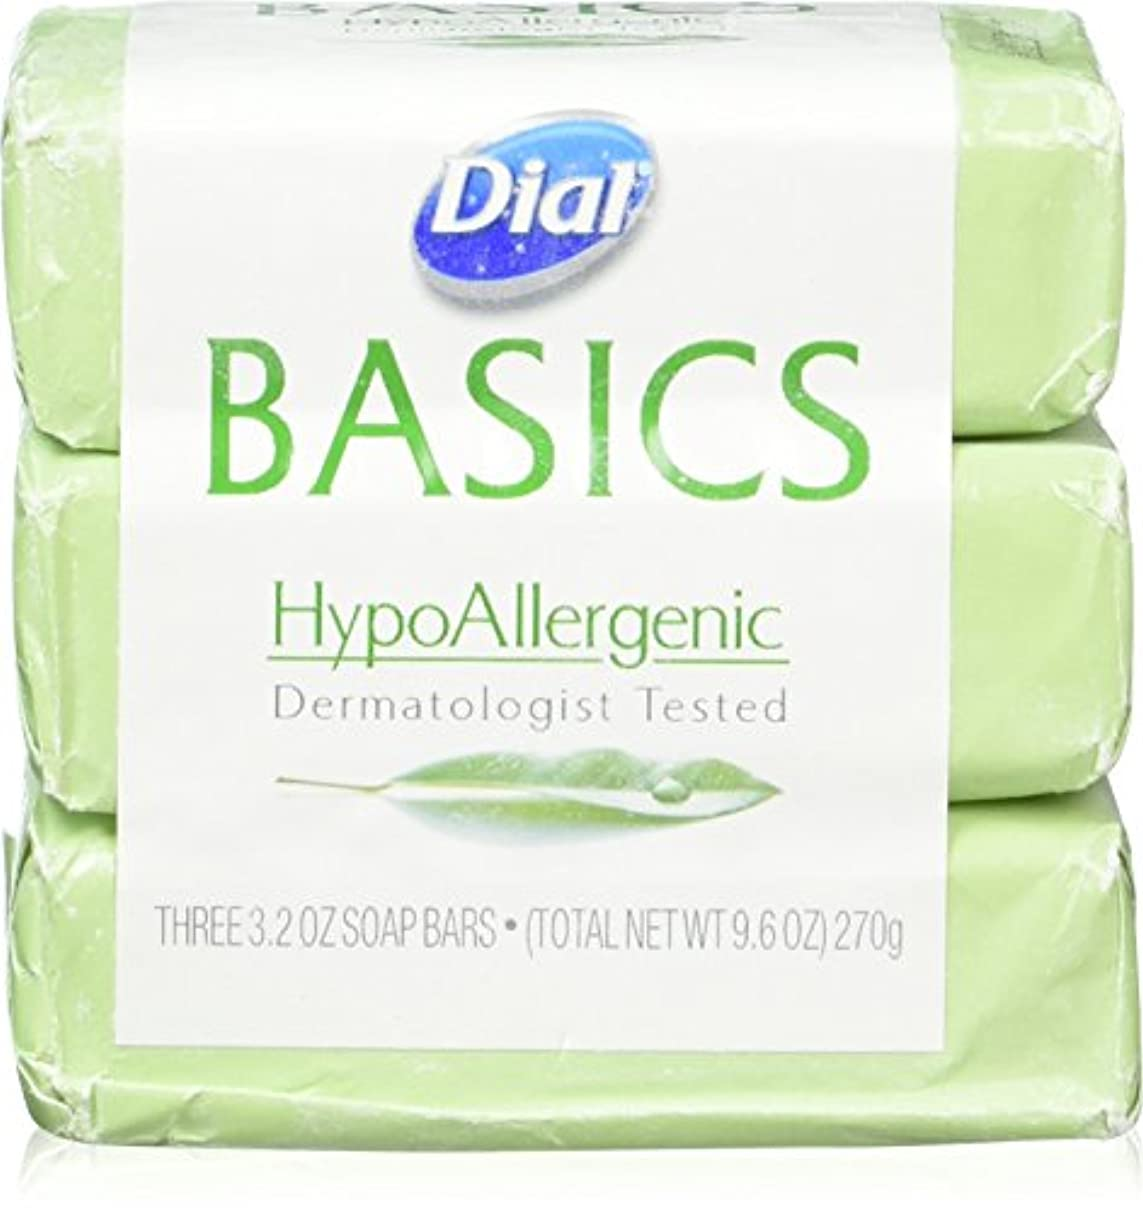 インポート作りゴルフDial Basics HypoAllergenic Dermatologist Tested Bar Soap, 3.2 oz (12 Bars) by Basics